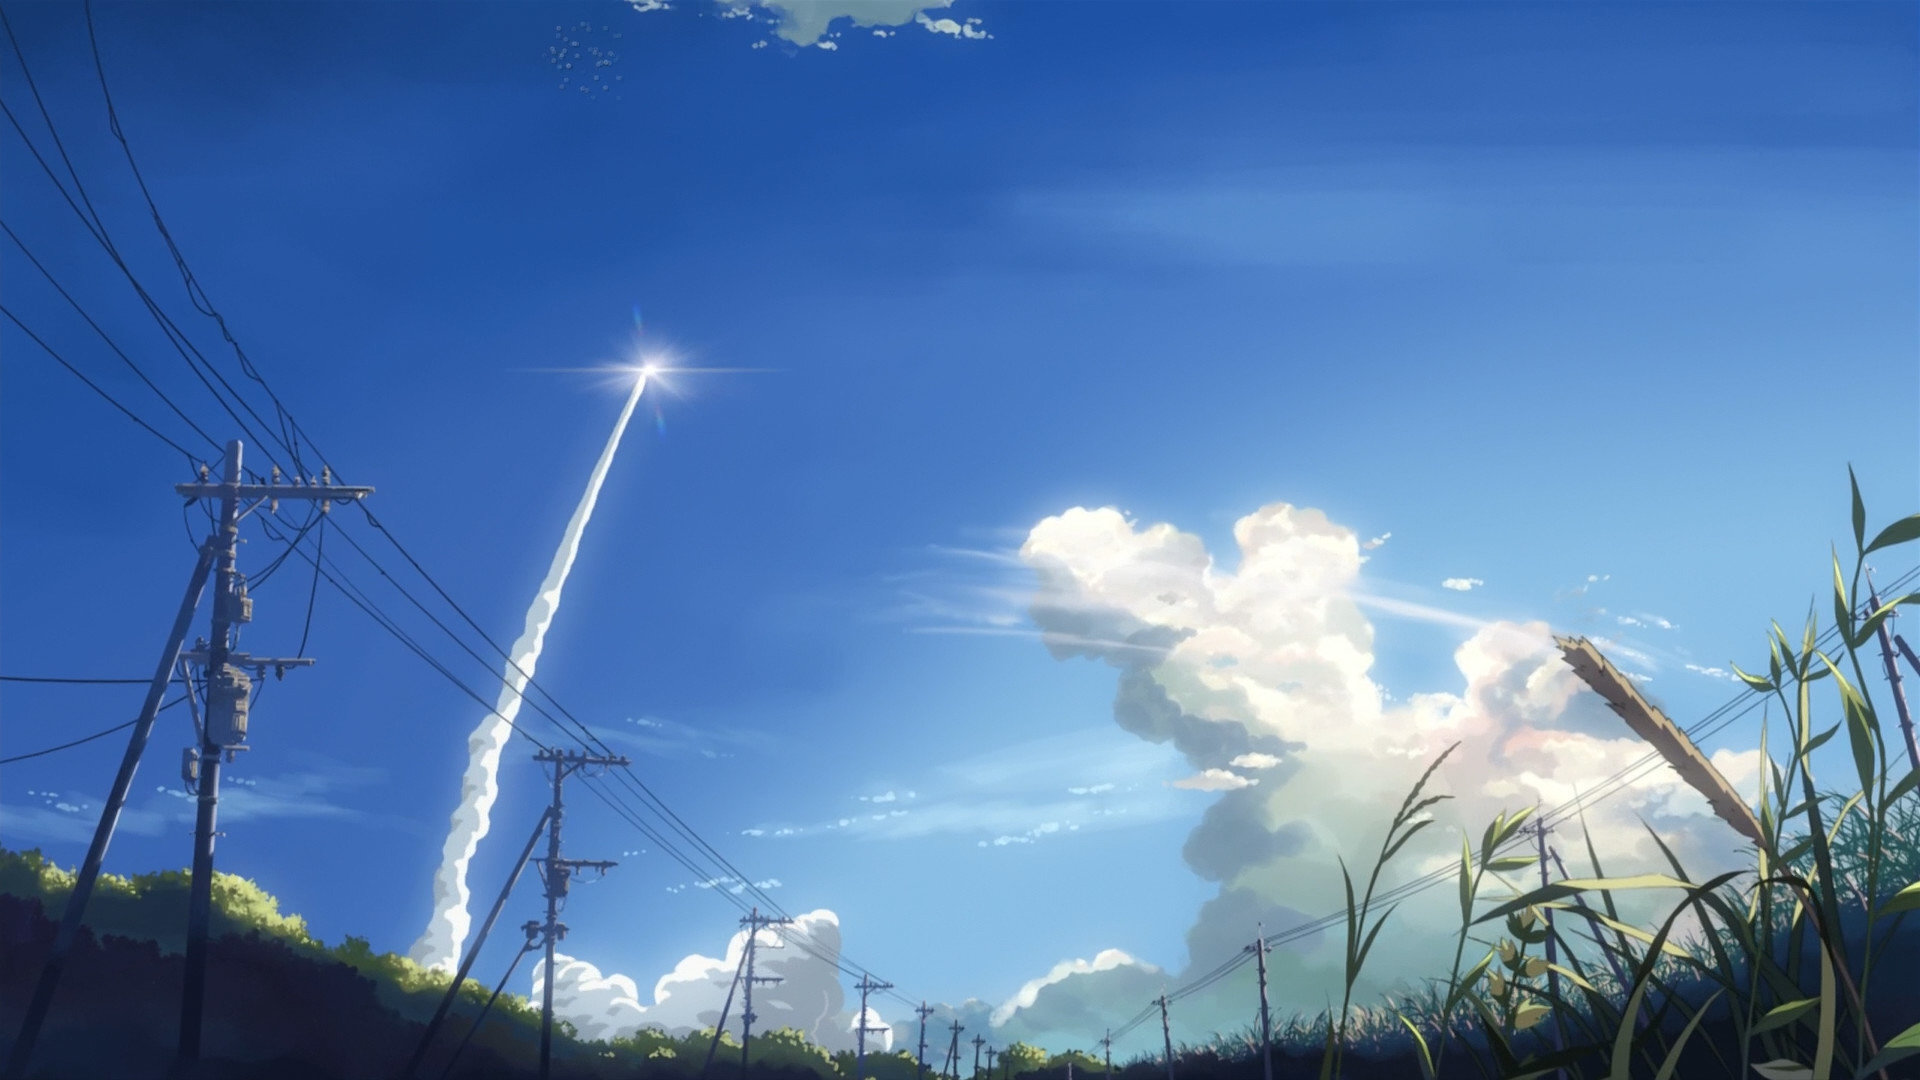 Download hd 1920x1080 5 (cm) Centimeters Per Second desktop background ID:90111 for free